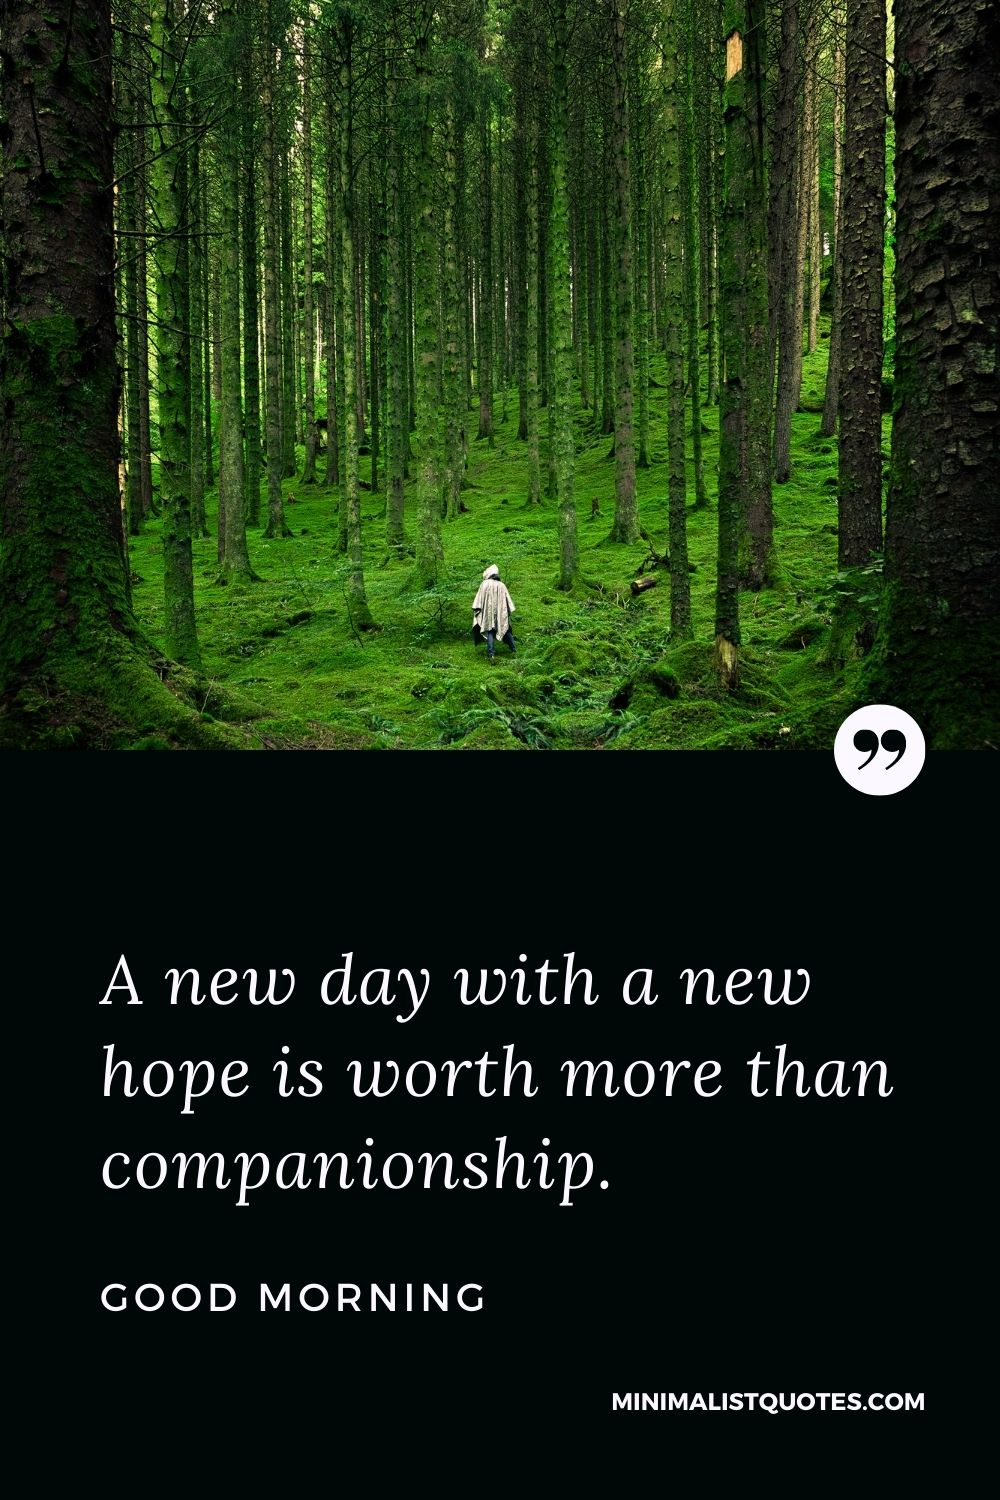 Good Morning Wish & Message With Image: A new day with a new hope is worth more than companionship.